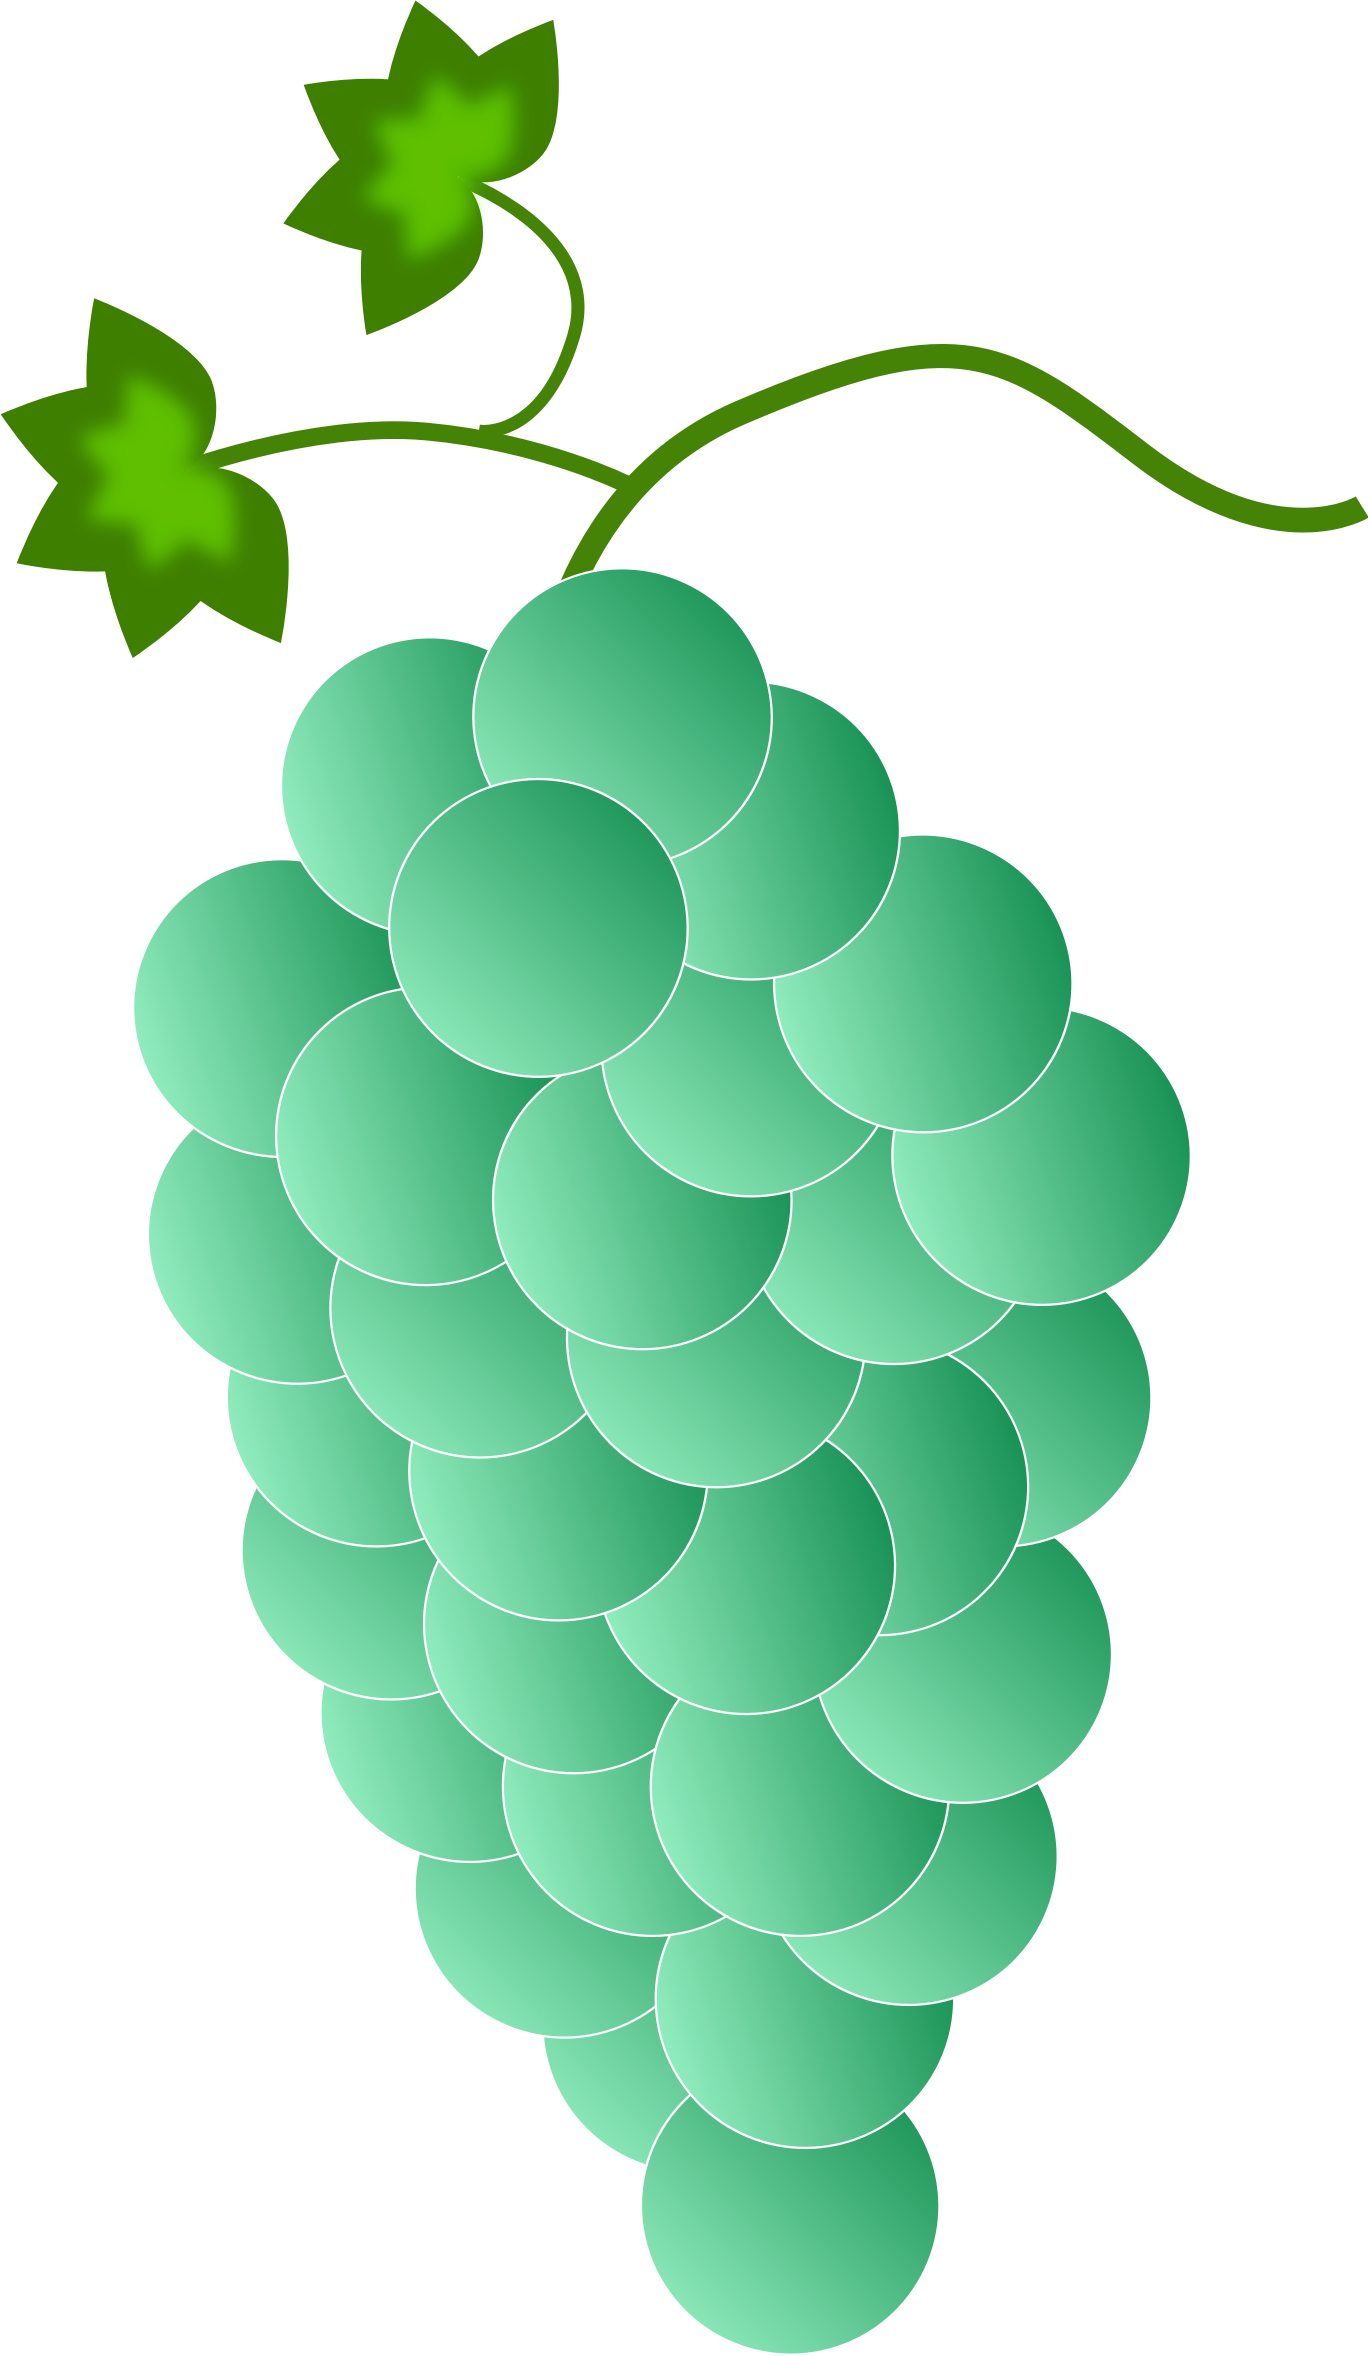 Colored Grapes - Green by Astro